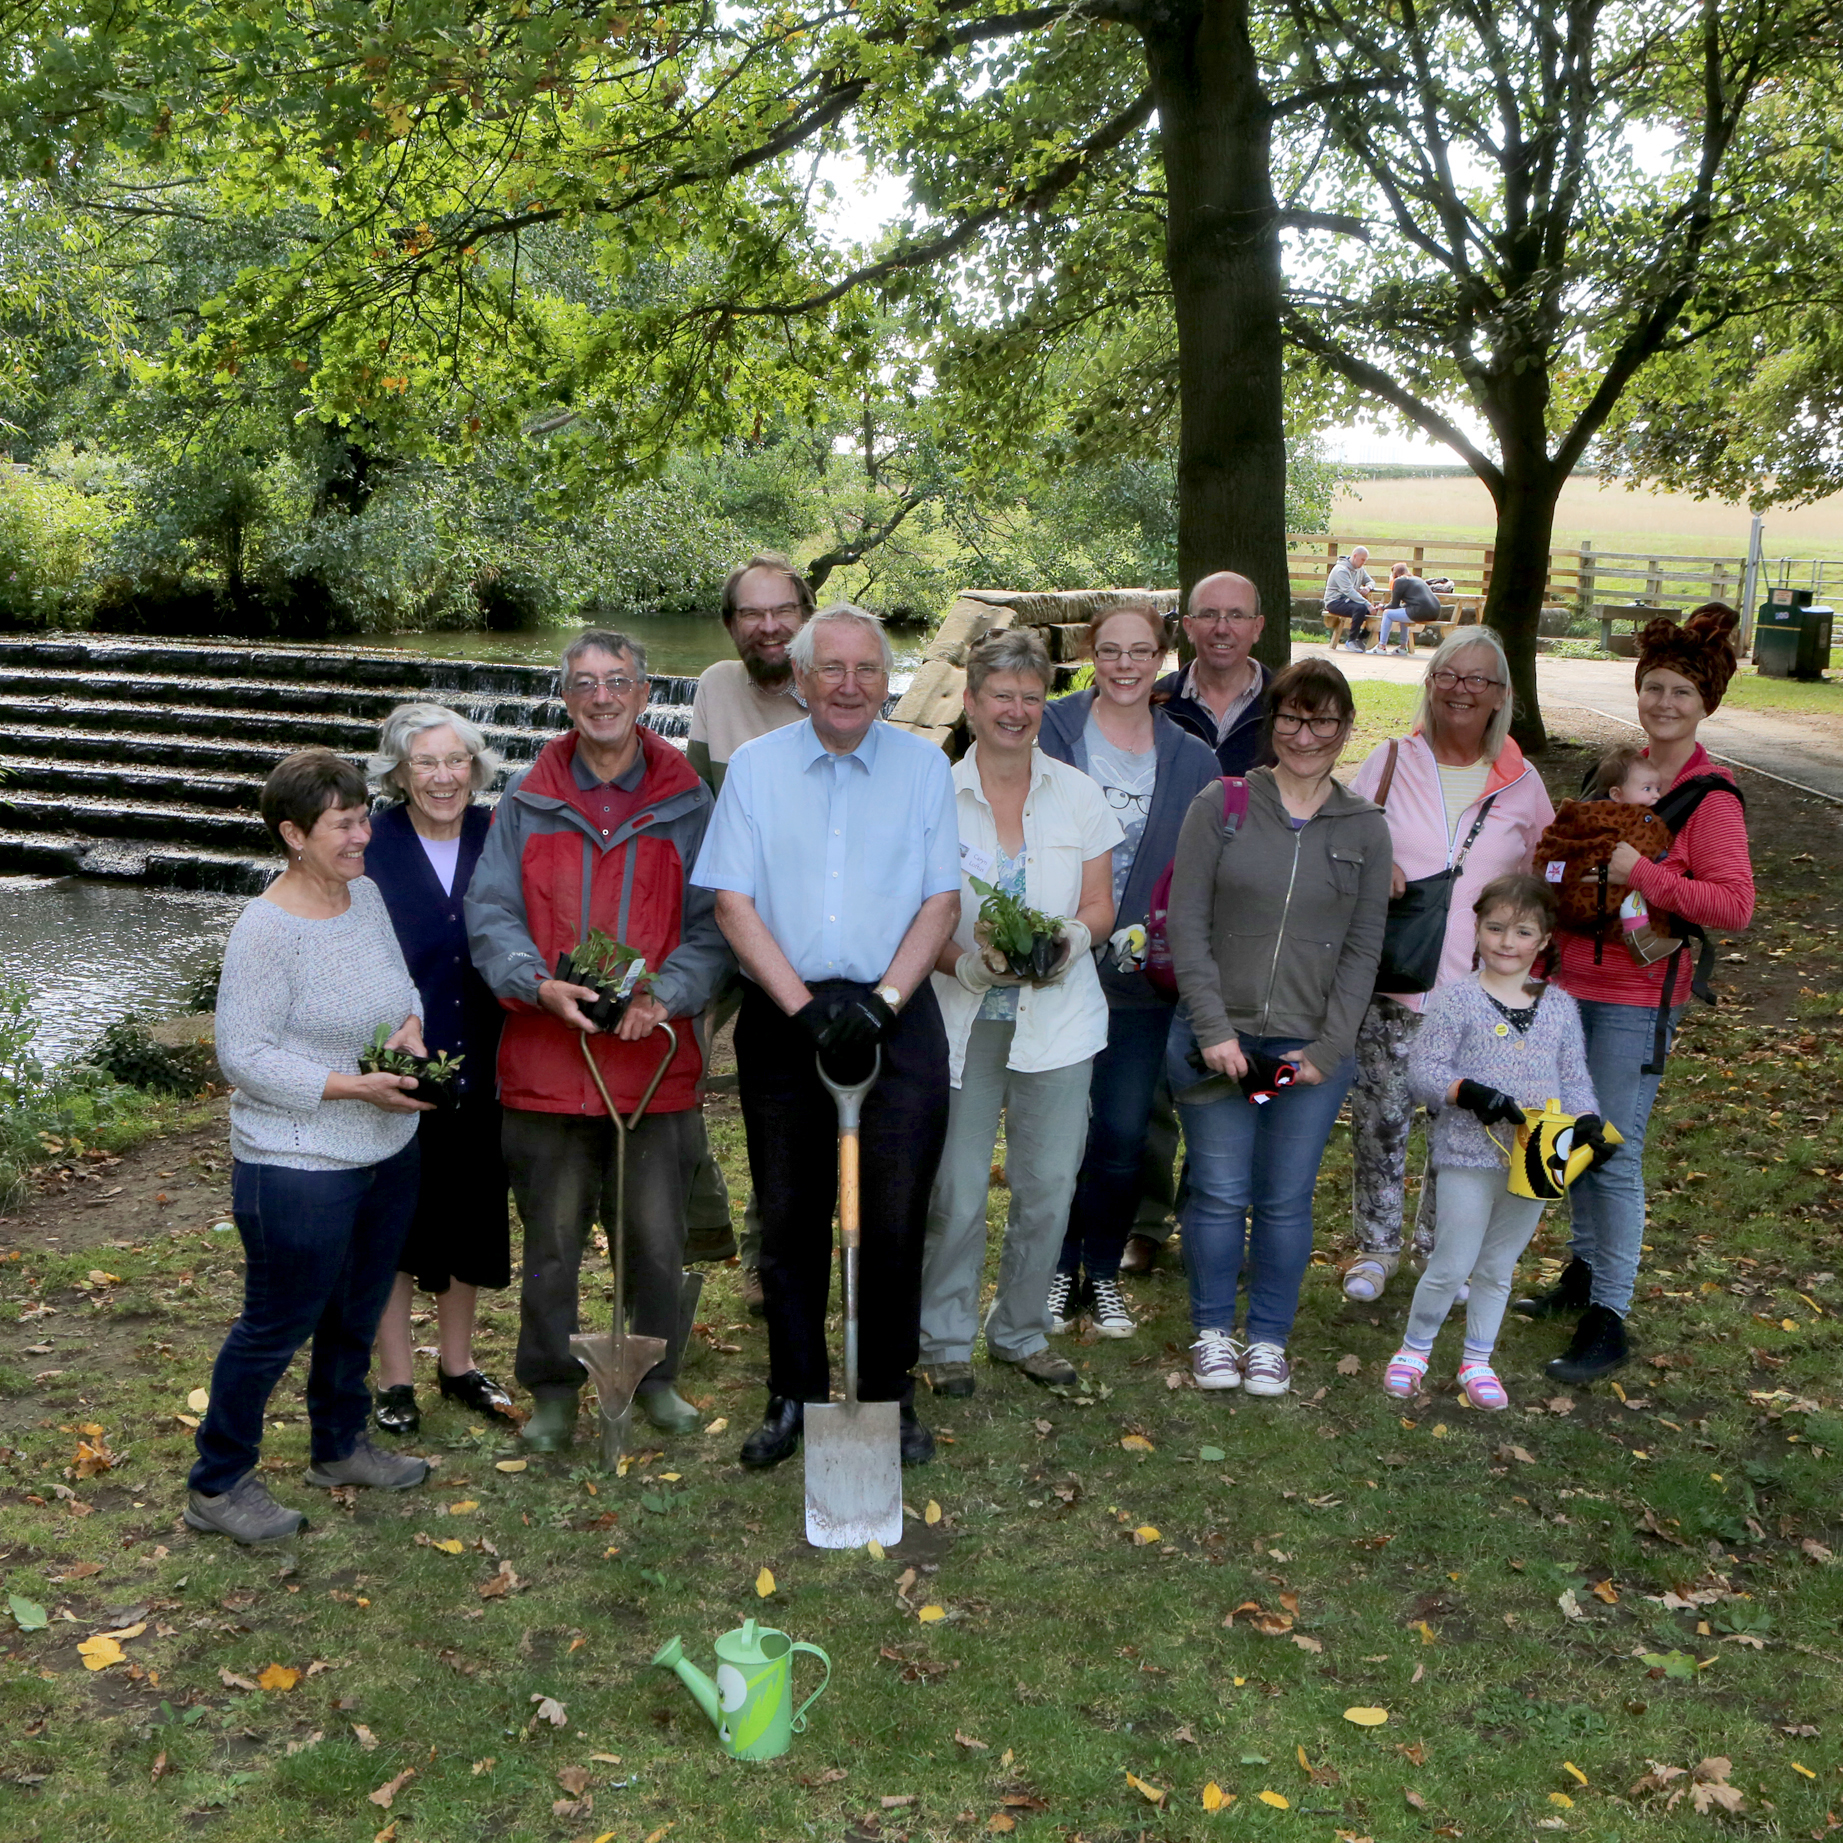 Some of the over 30 helpers Image: Hambleton DC